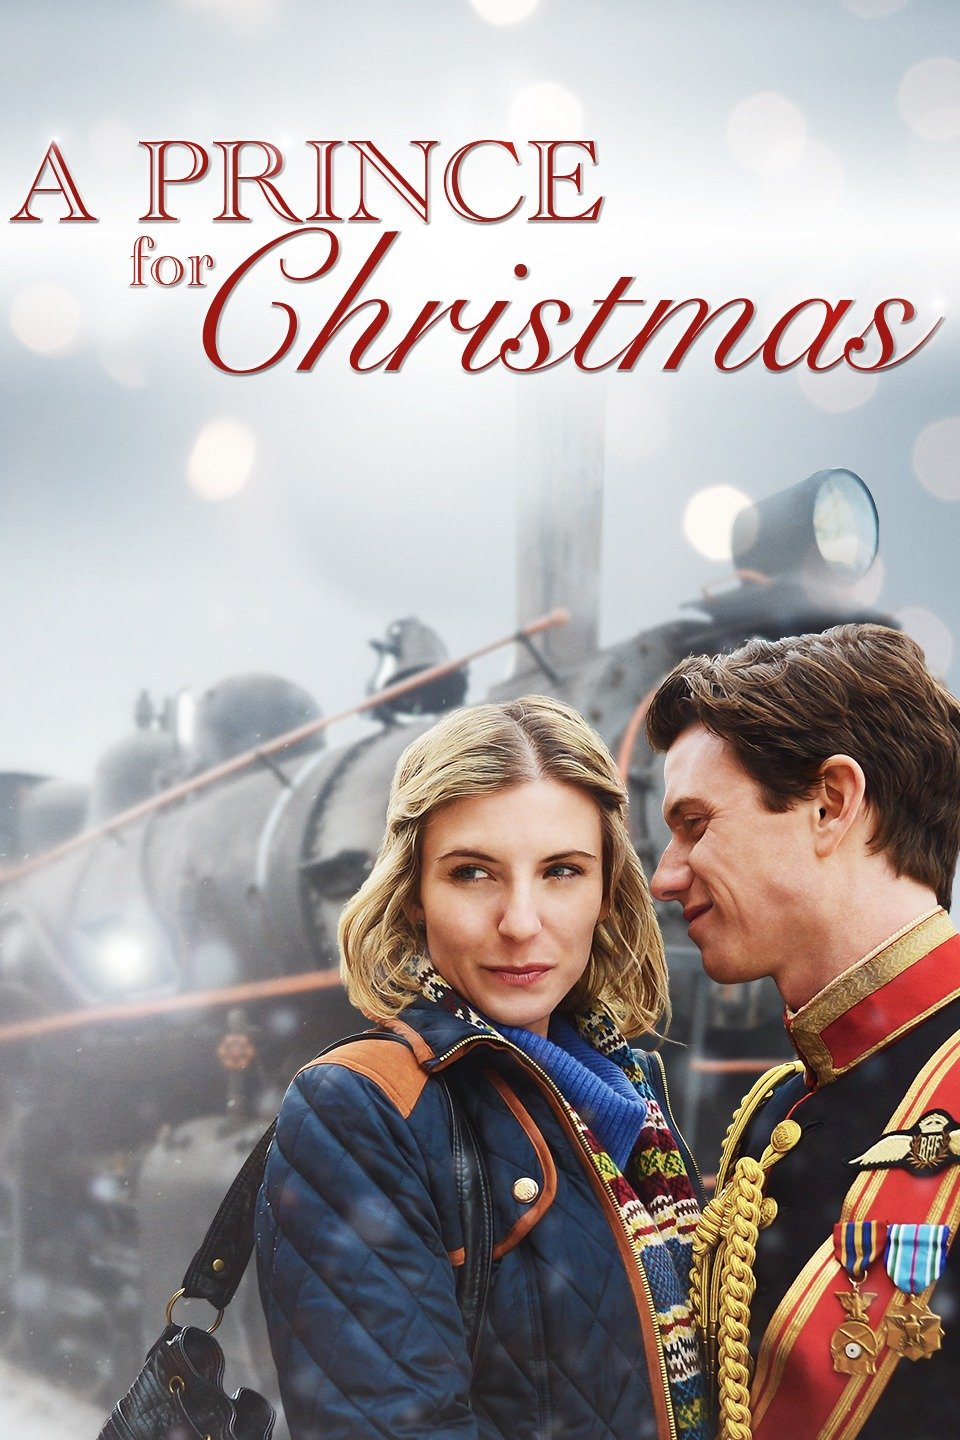 a prince for christmas movie cover